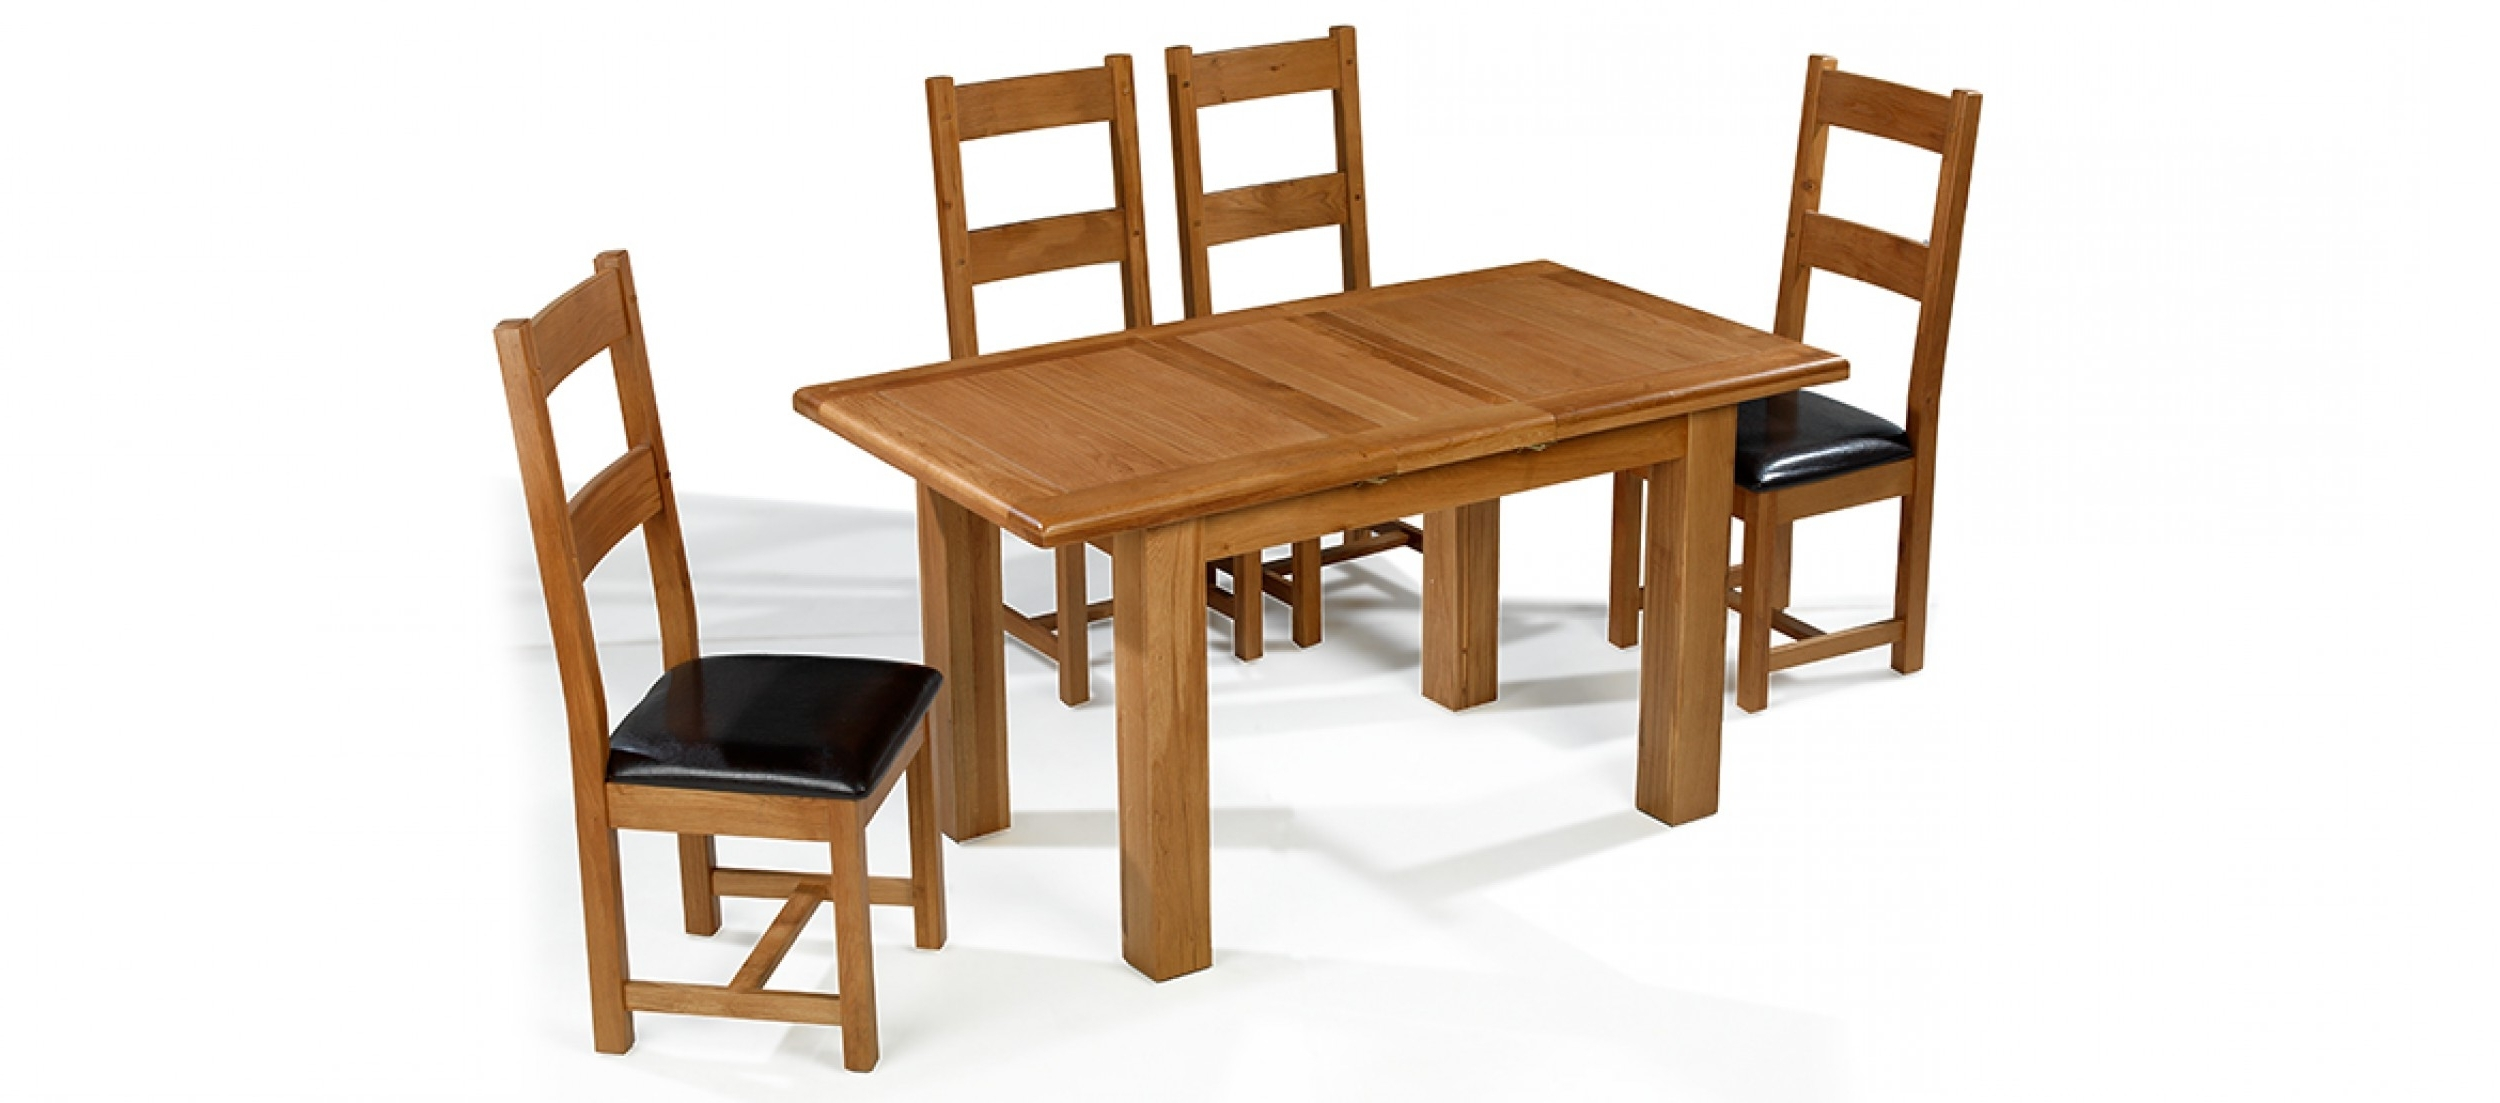 Newest Barham Oak 120 150 Cm Extending Dining Table And 4 Chairs (View 16 of 25)